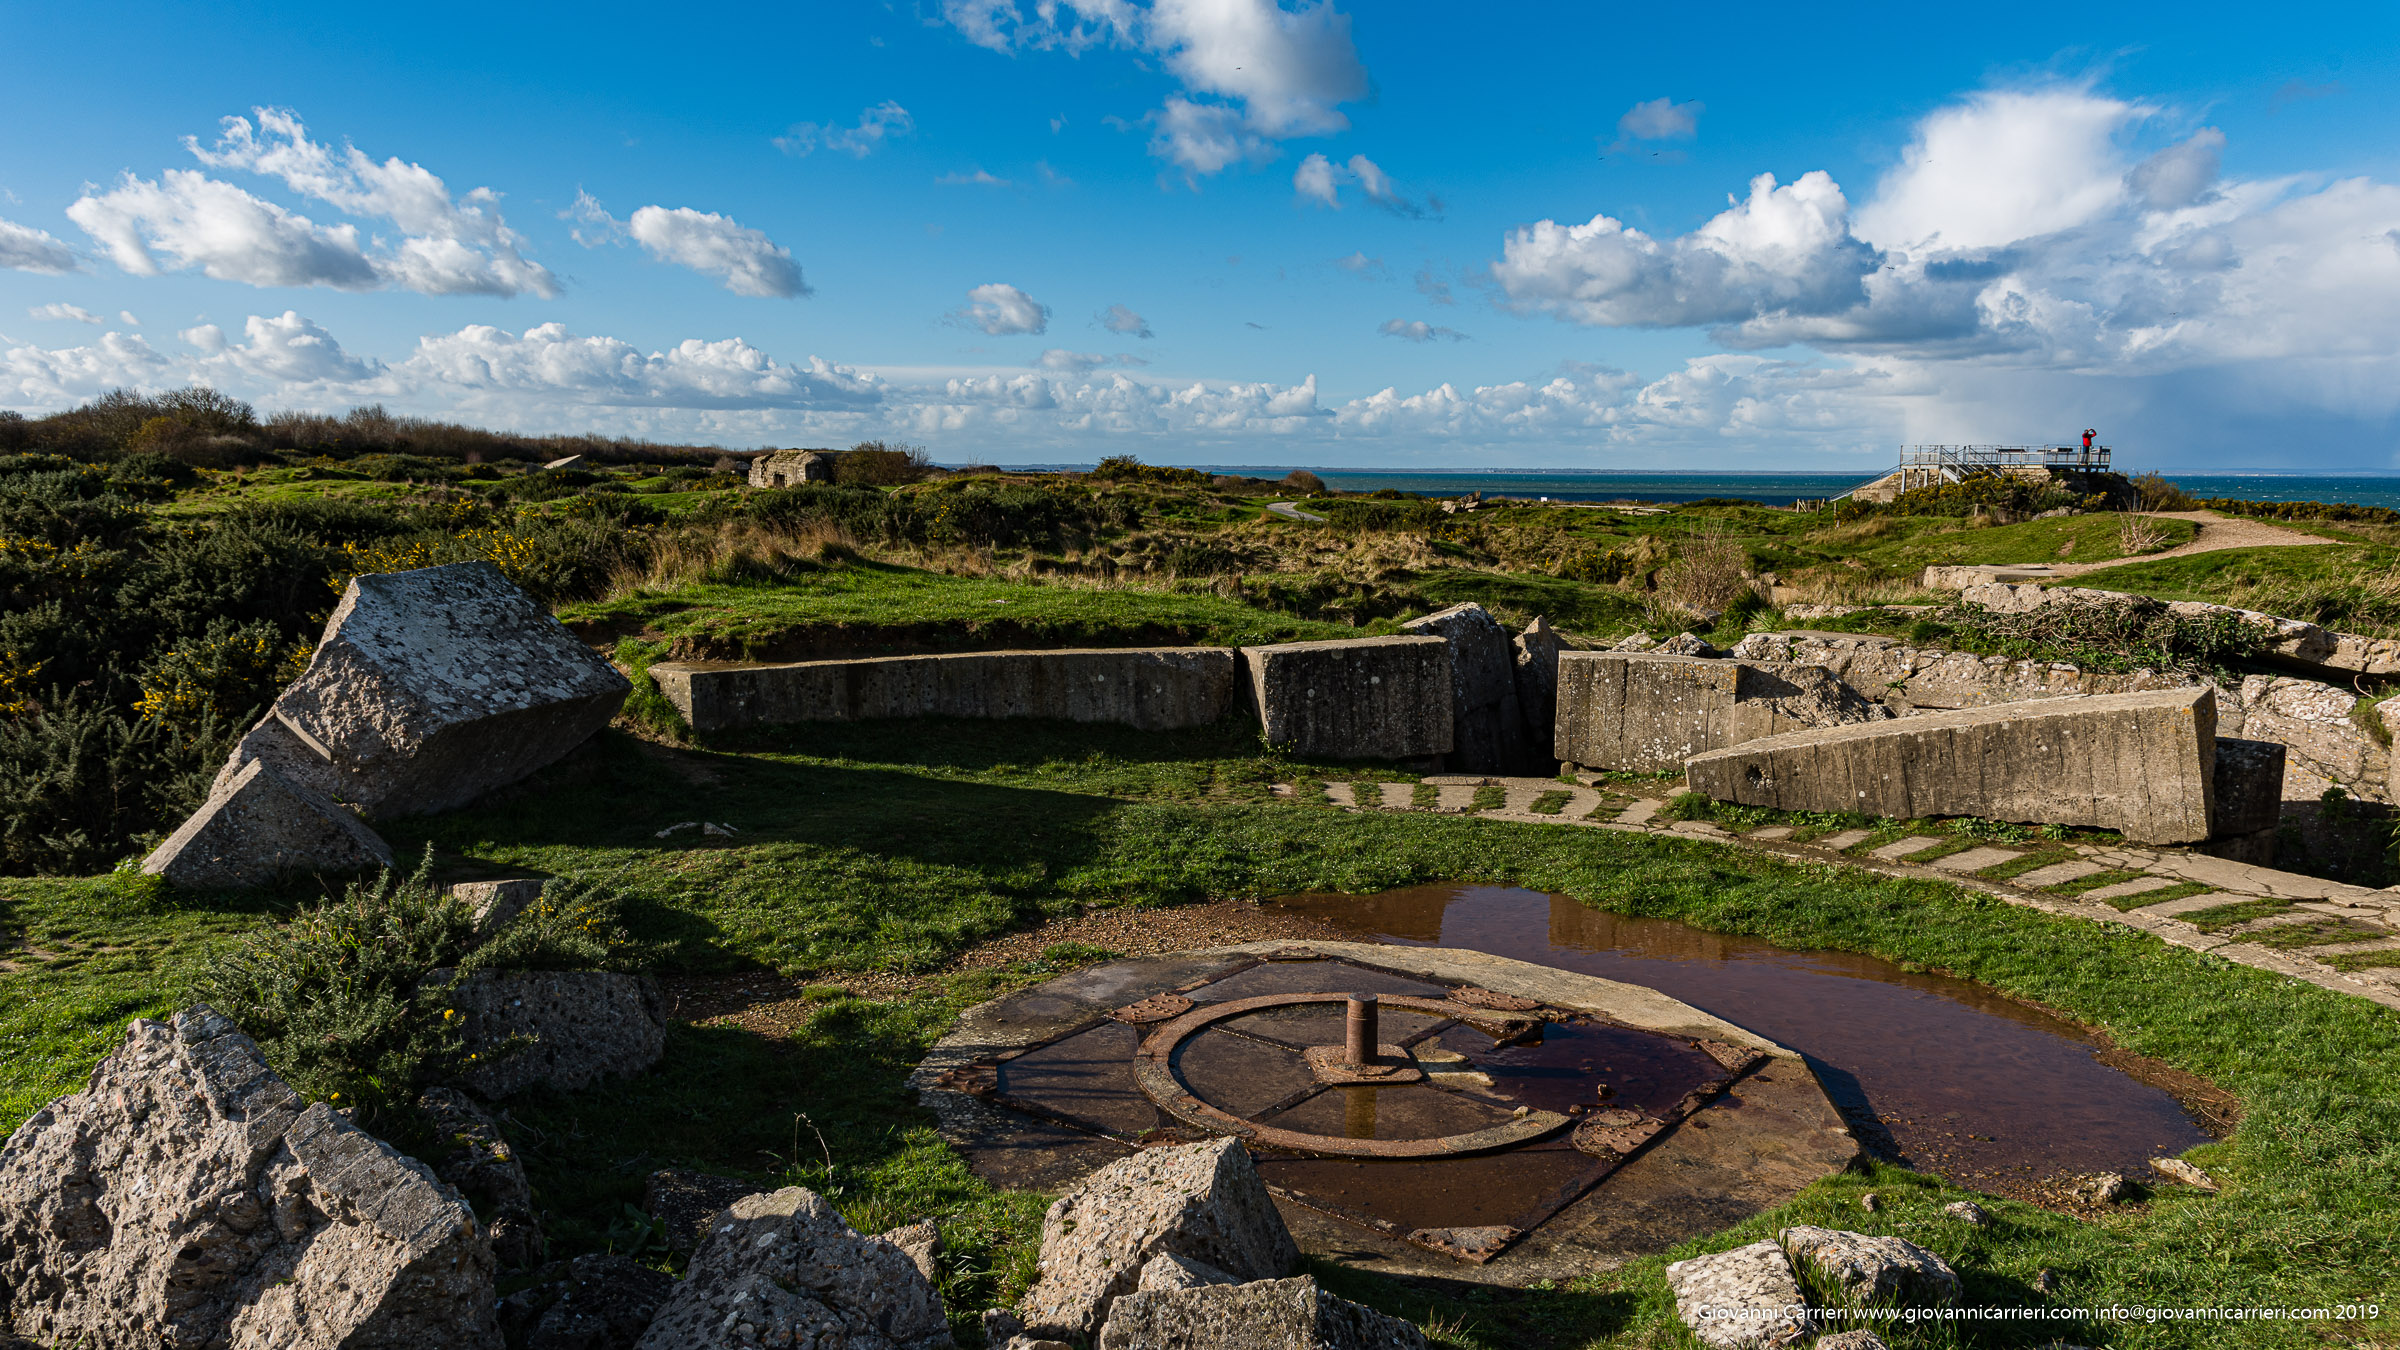 Battle of Pointe du Hoc - Operation Overlord - plots artillery